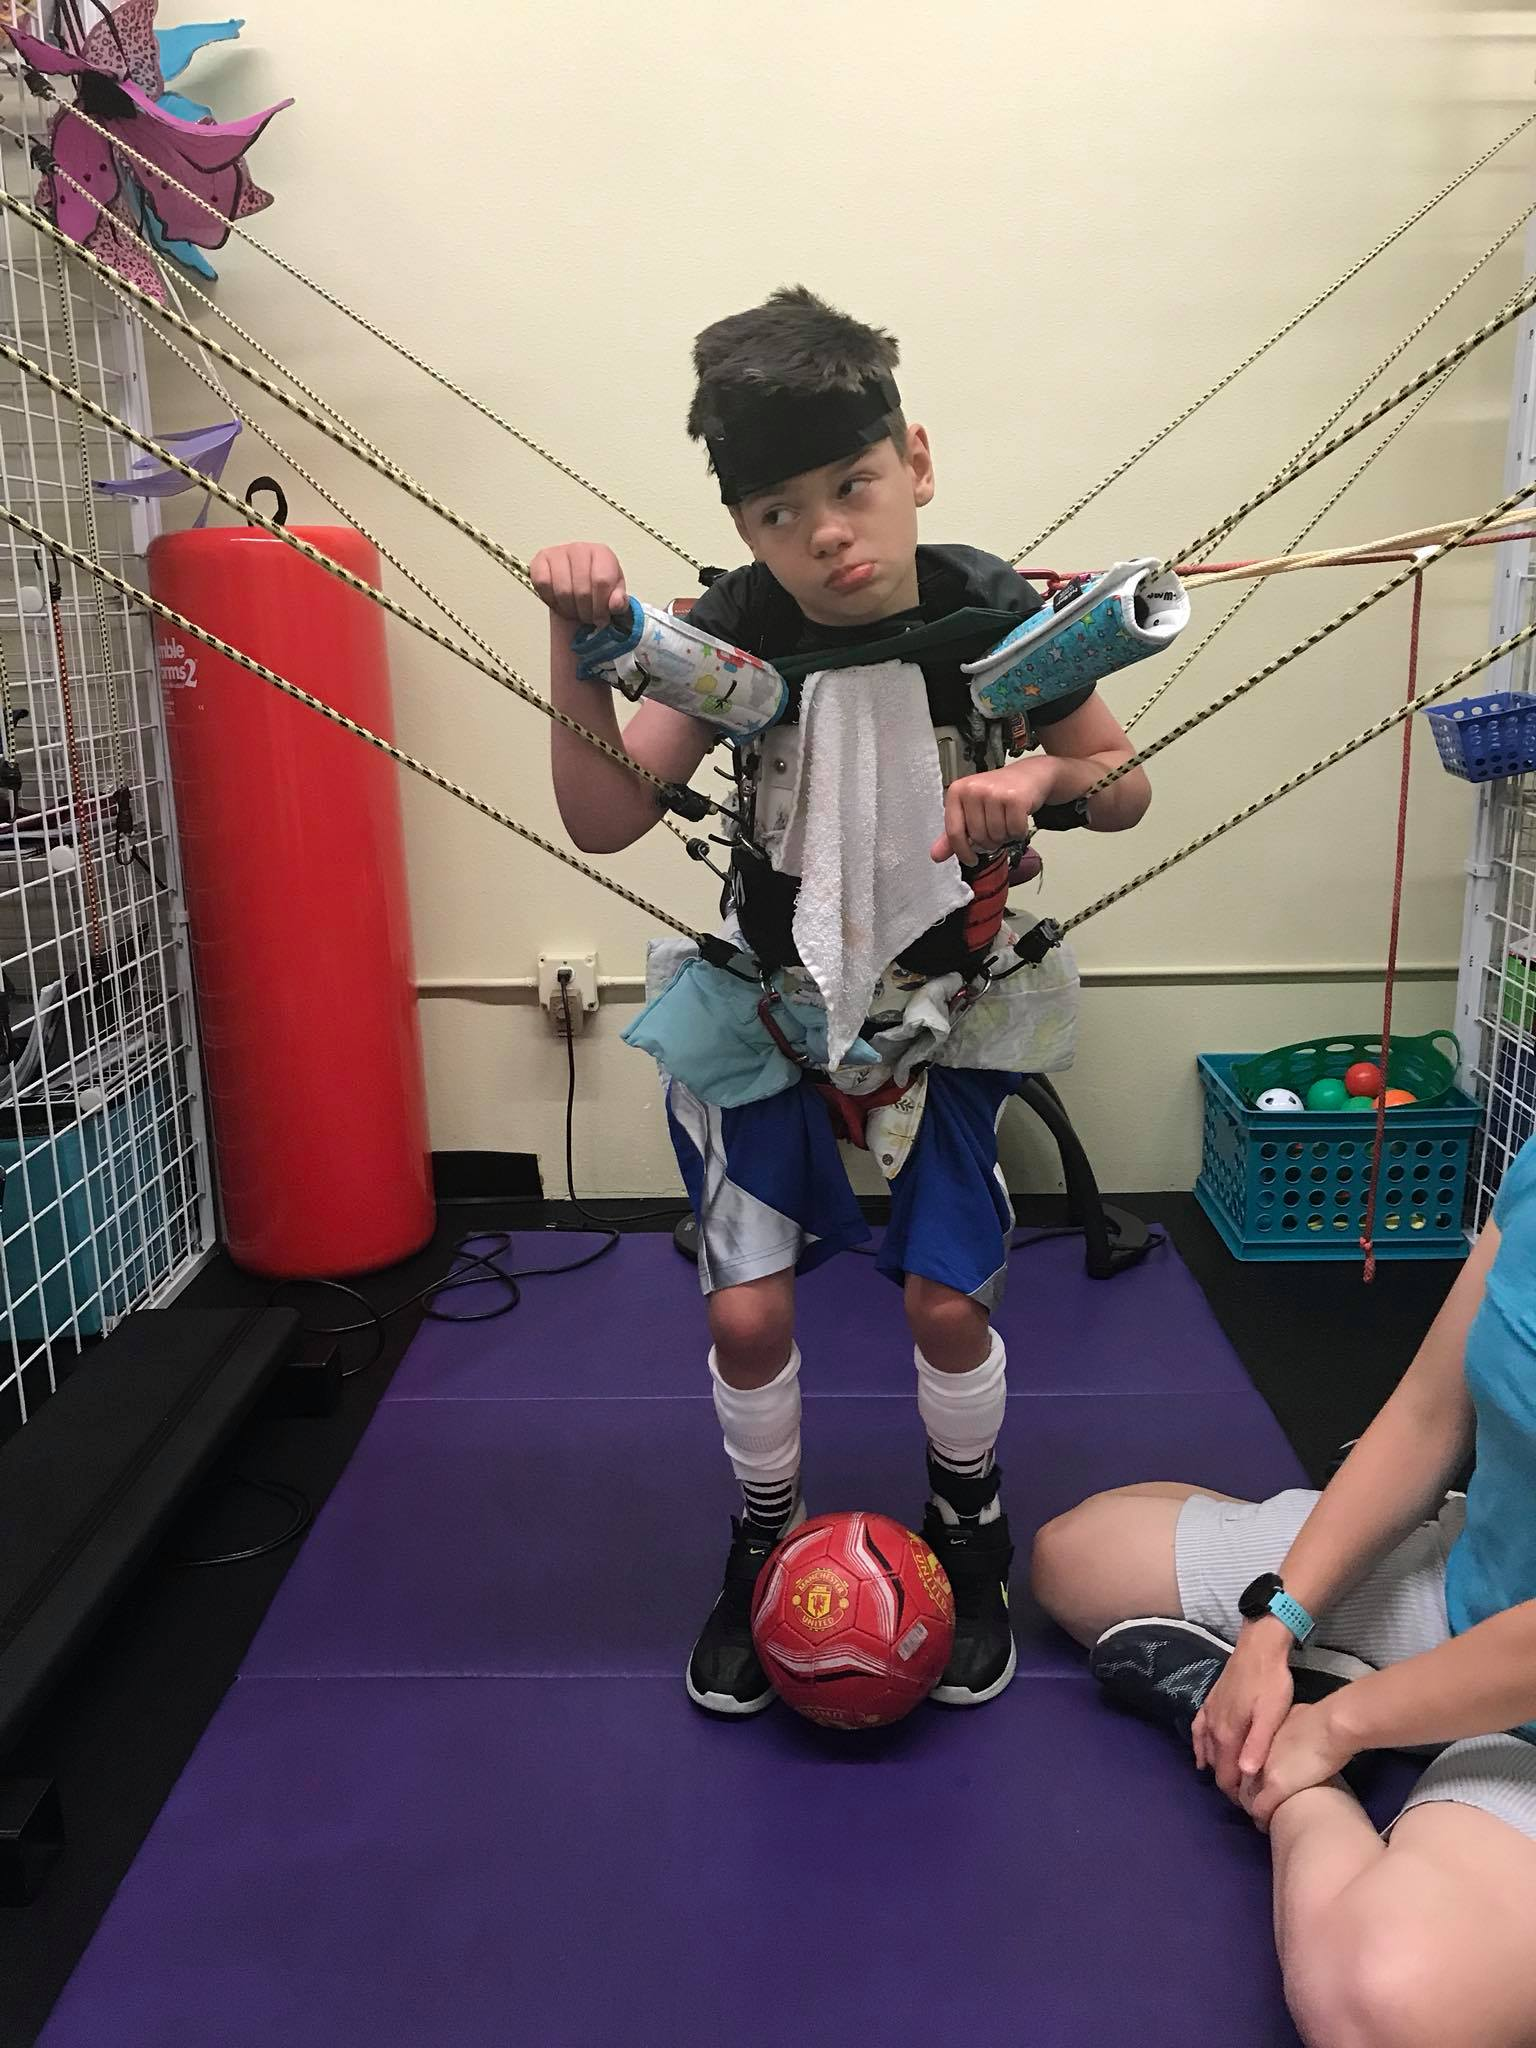 """Gabriel working hard in a """"SpiderCage"""" which allows him to perform balance and strengthening exercises."""